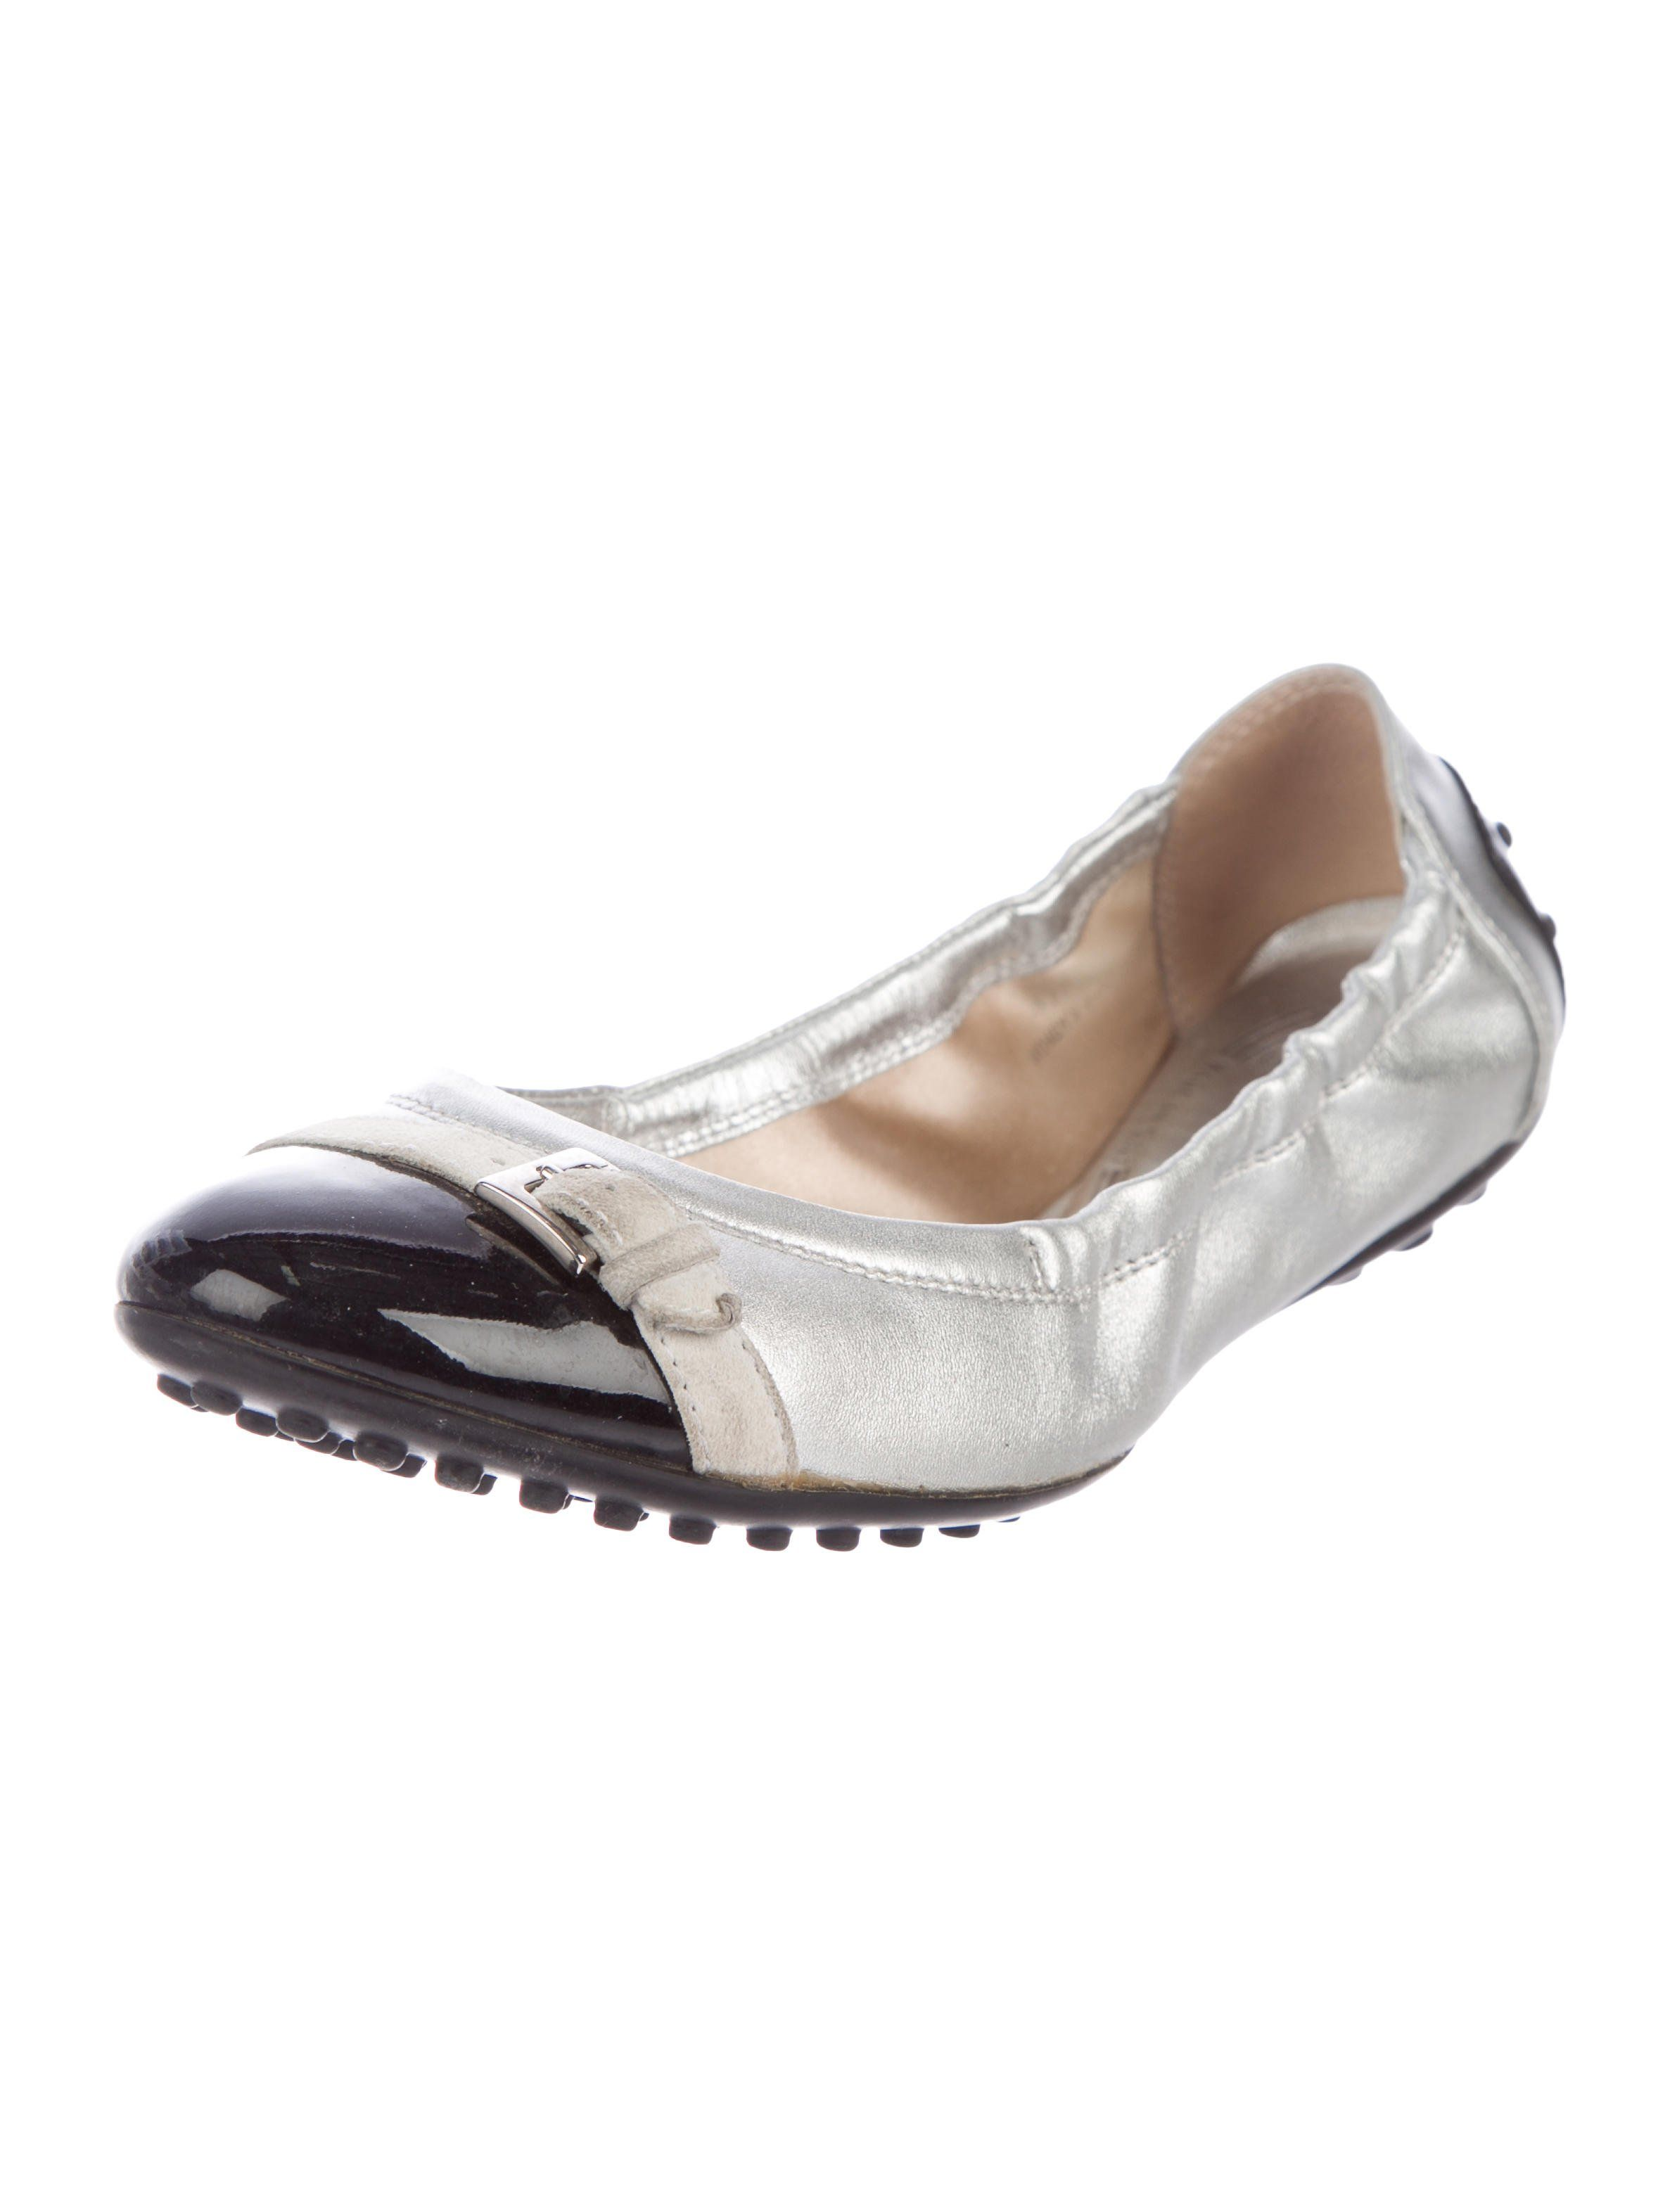 98e339922d6204 Silver leather Tod s round-toe flats with black patent leather cap toes